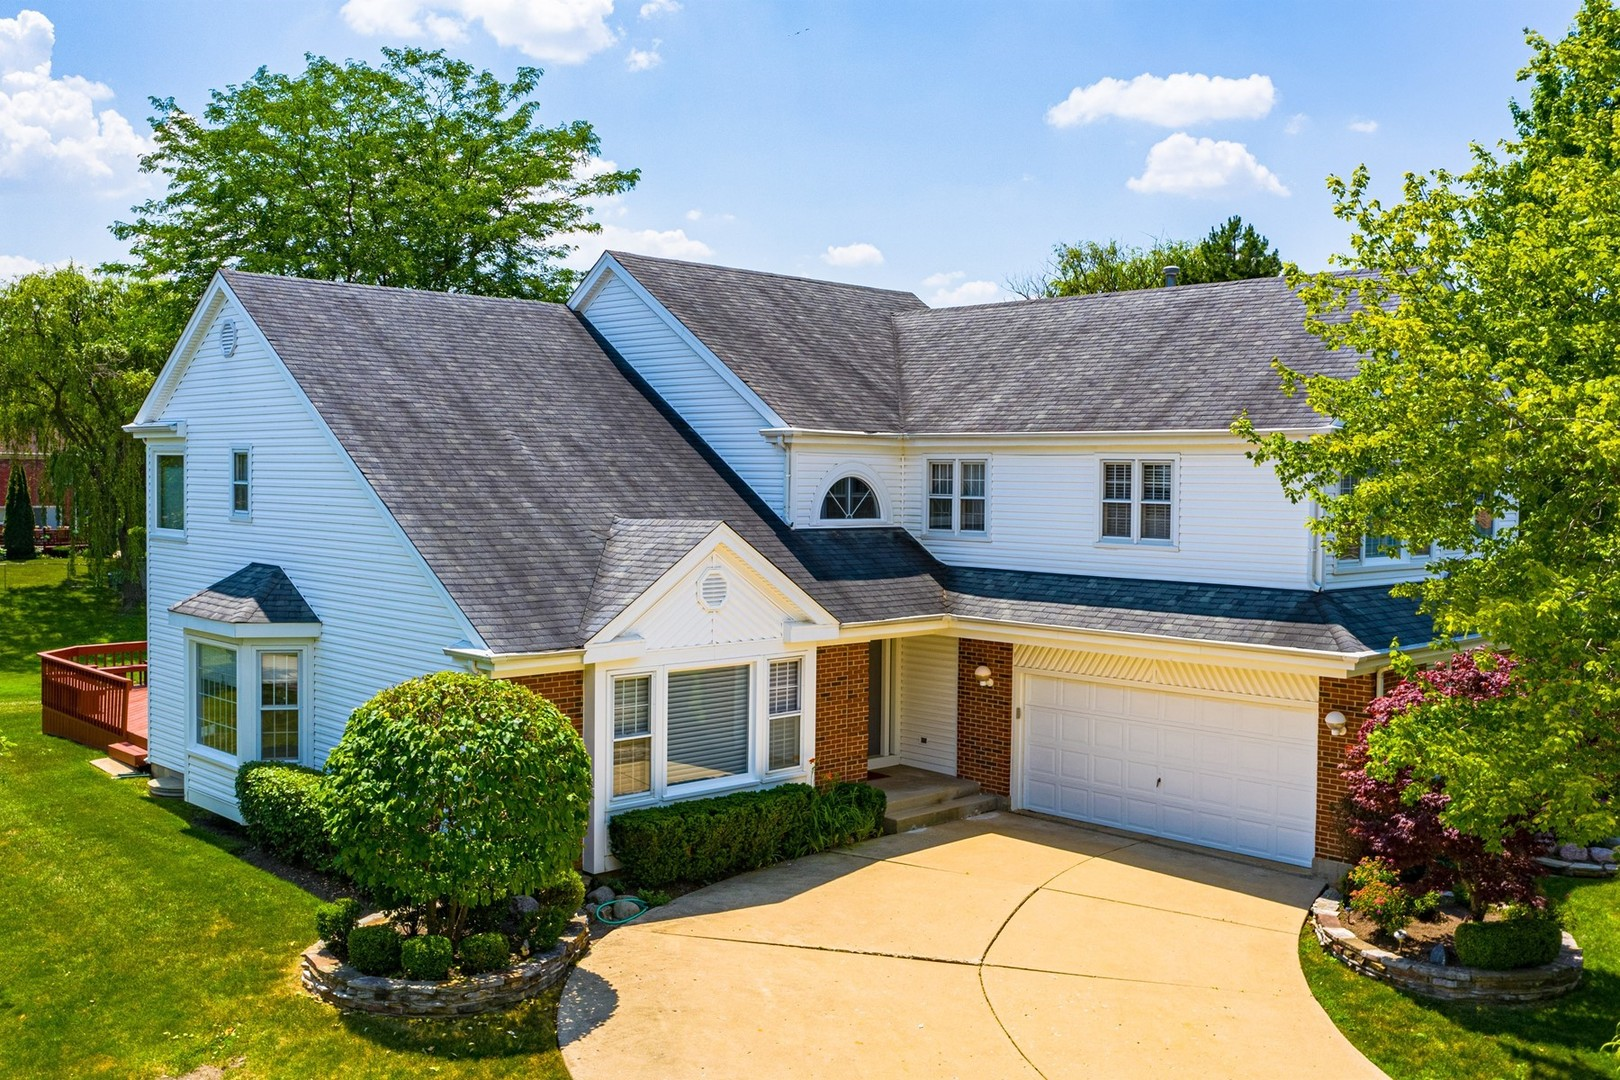 651 Raintree Court, Buffalo Grove in Lake County, IL 60089 Home for Sale